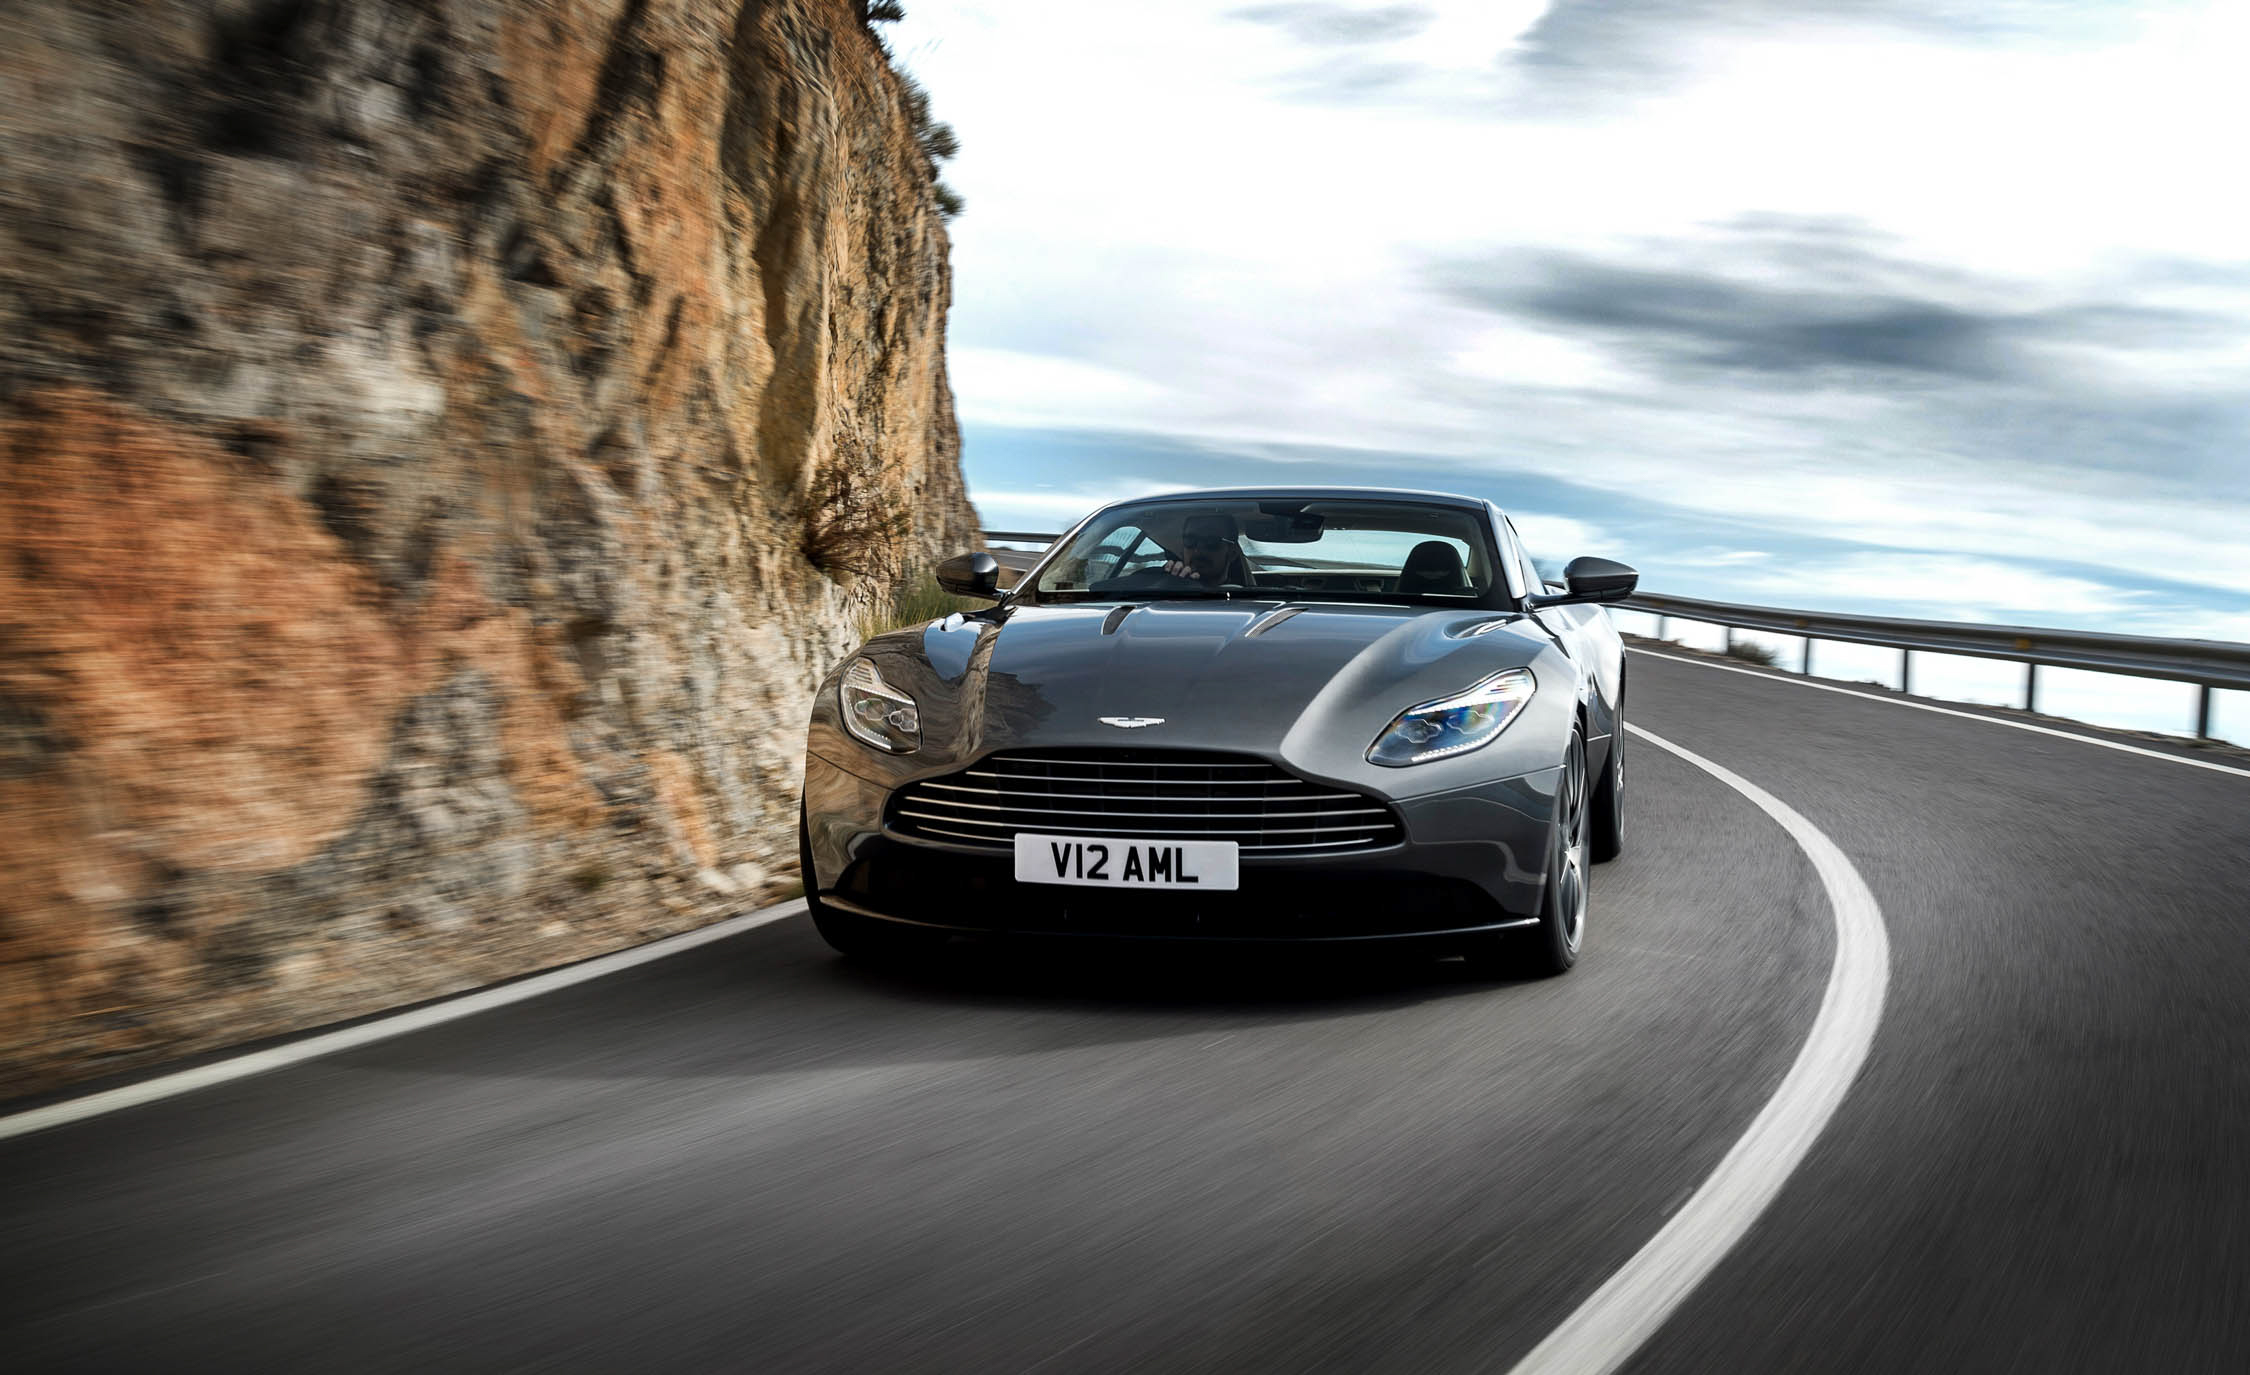 2017 Aston Martin Db11 Test Drive (Photo 14 of 22)